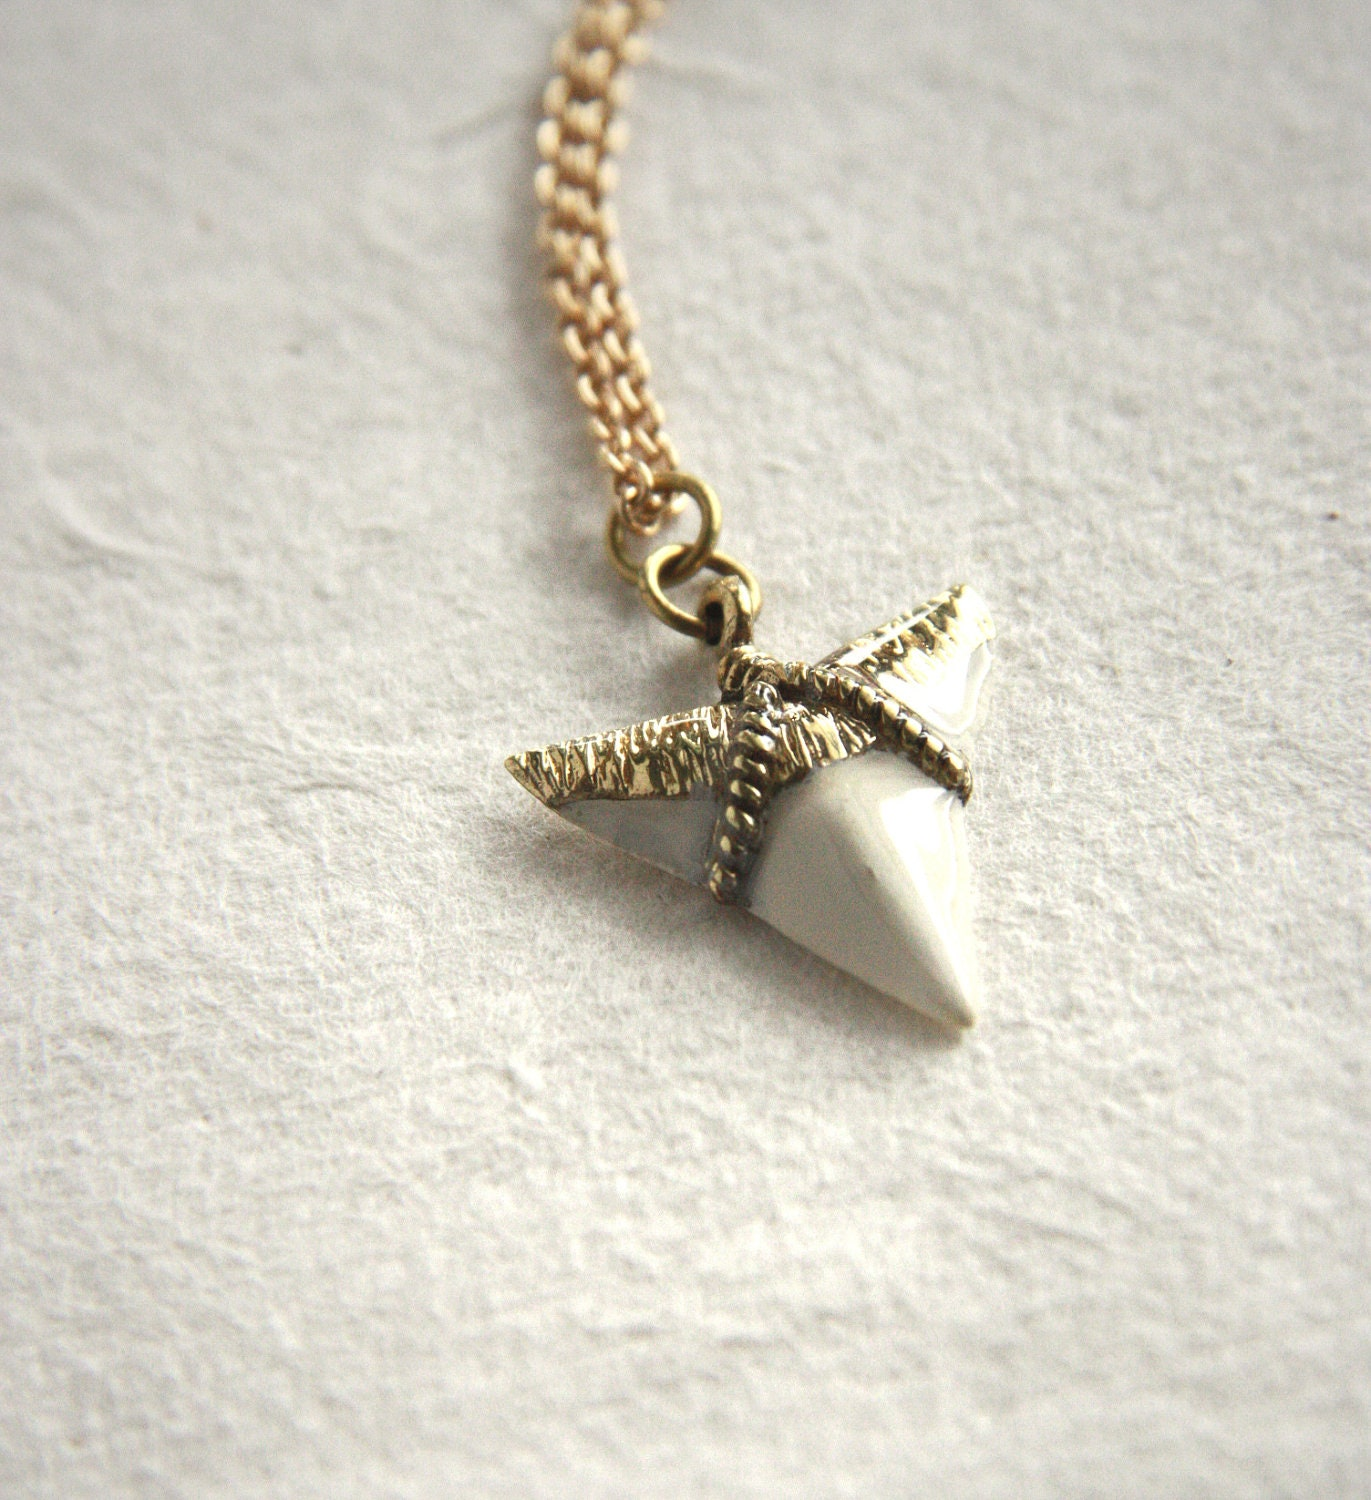 metallic tooth jewelry silver gallery product lyst shark gold pendant givenchy in necklace normal